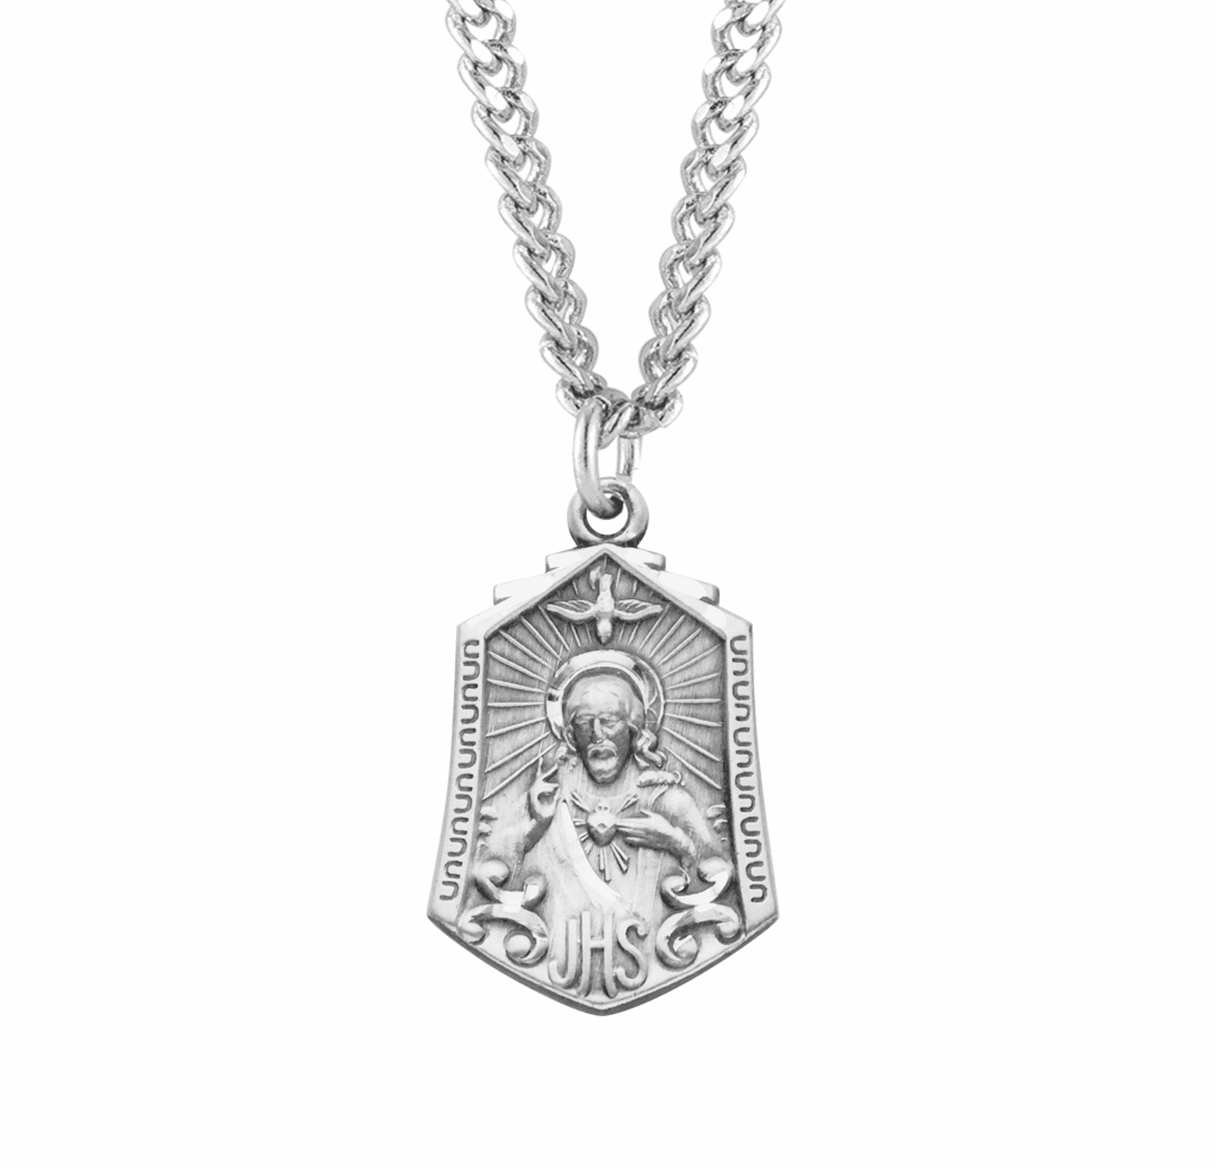 Sterling Silver Scapular Medal w/Heart Necklace by HMH Religious